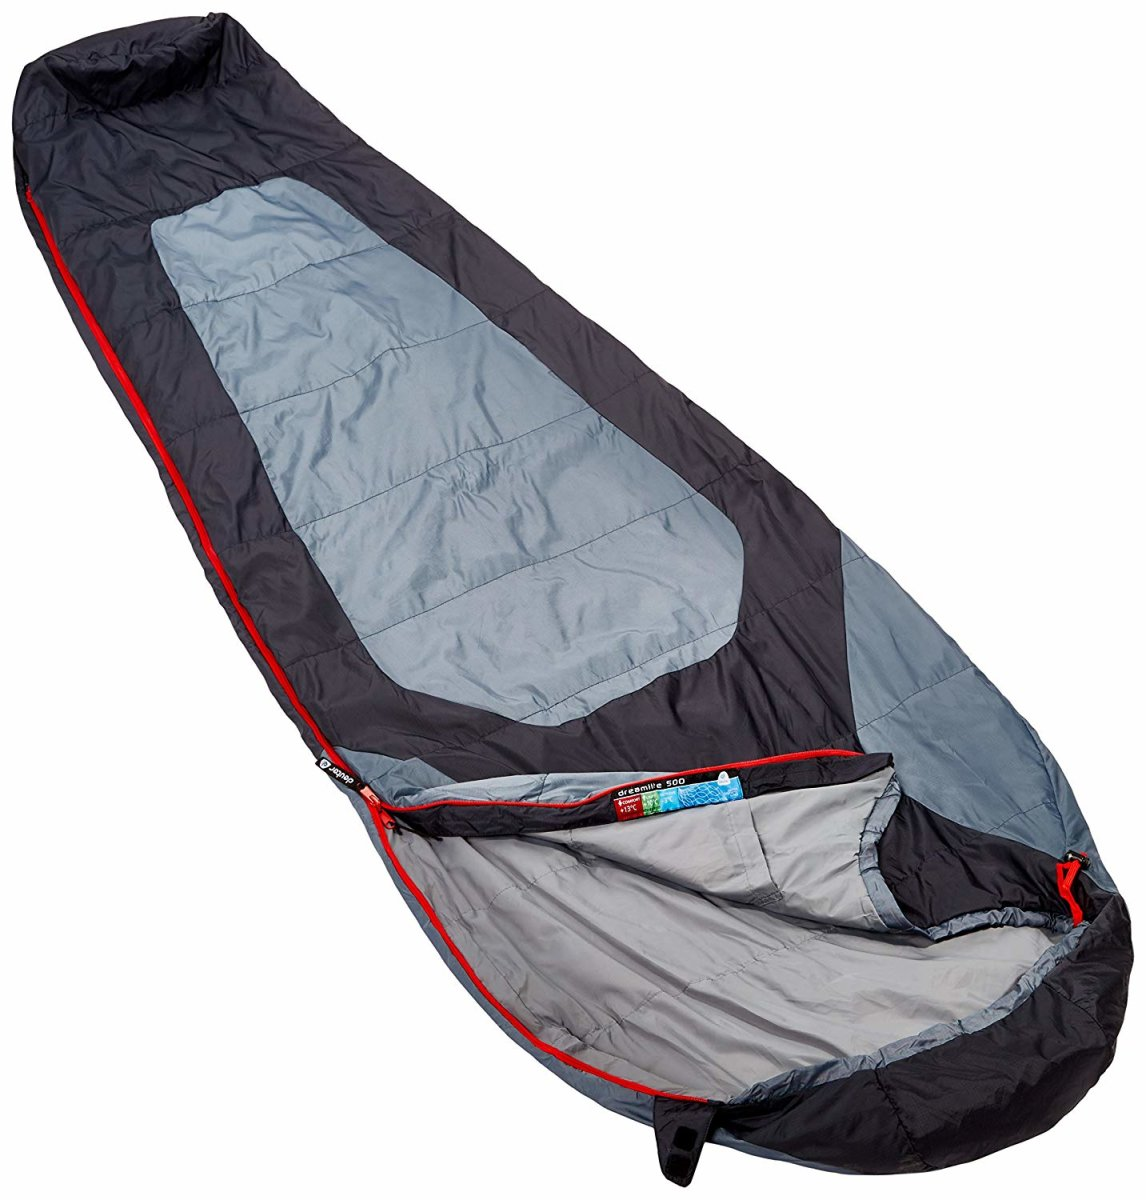 Спальник Deuter DREAM LITE 500 L left black grey 1 Спальник Deuter DREAM LITE 500 left black grey 37081 4100 1